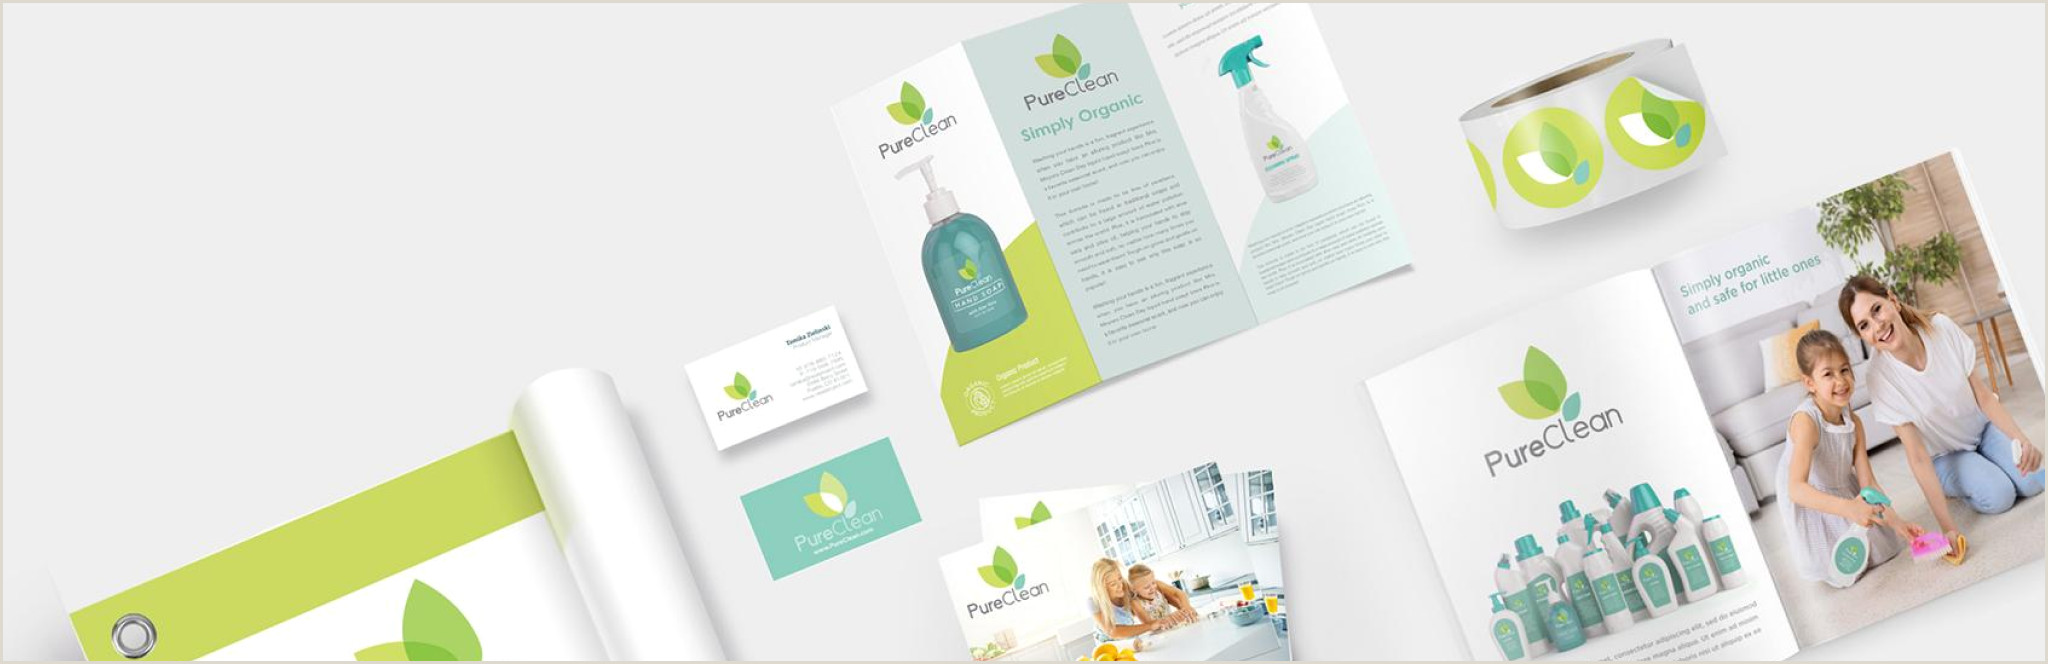 My Professional Business Cards Printplace High Quality Line Printing Services